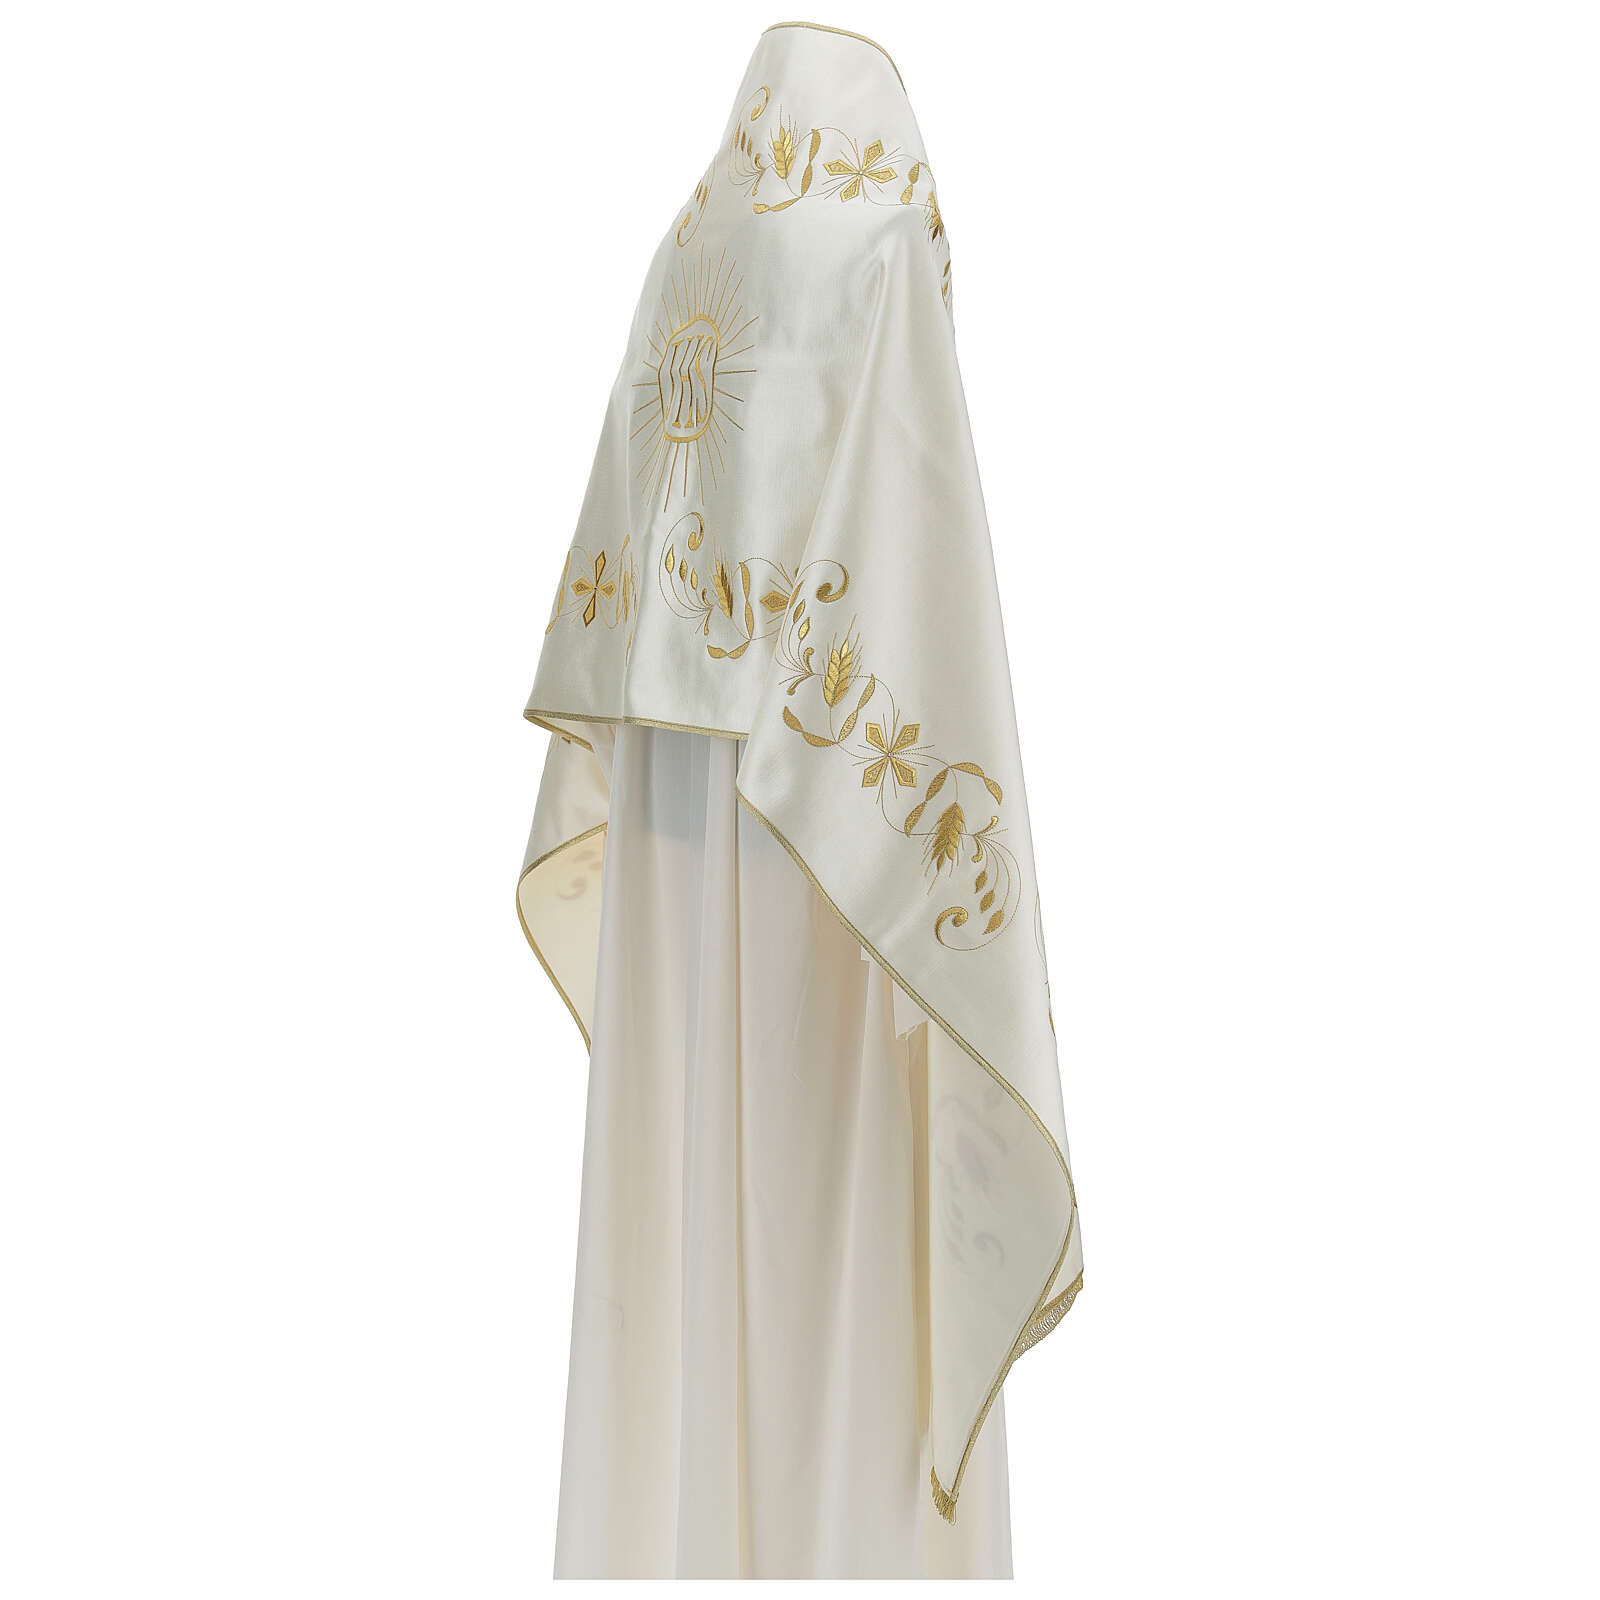 Ivory cotton blend humeral veil with Swarovsk 4